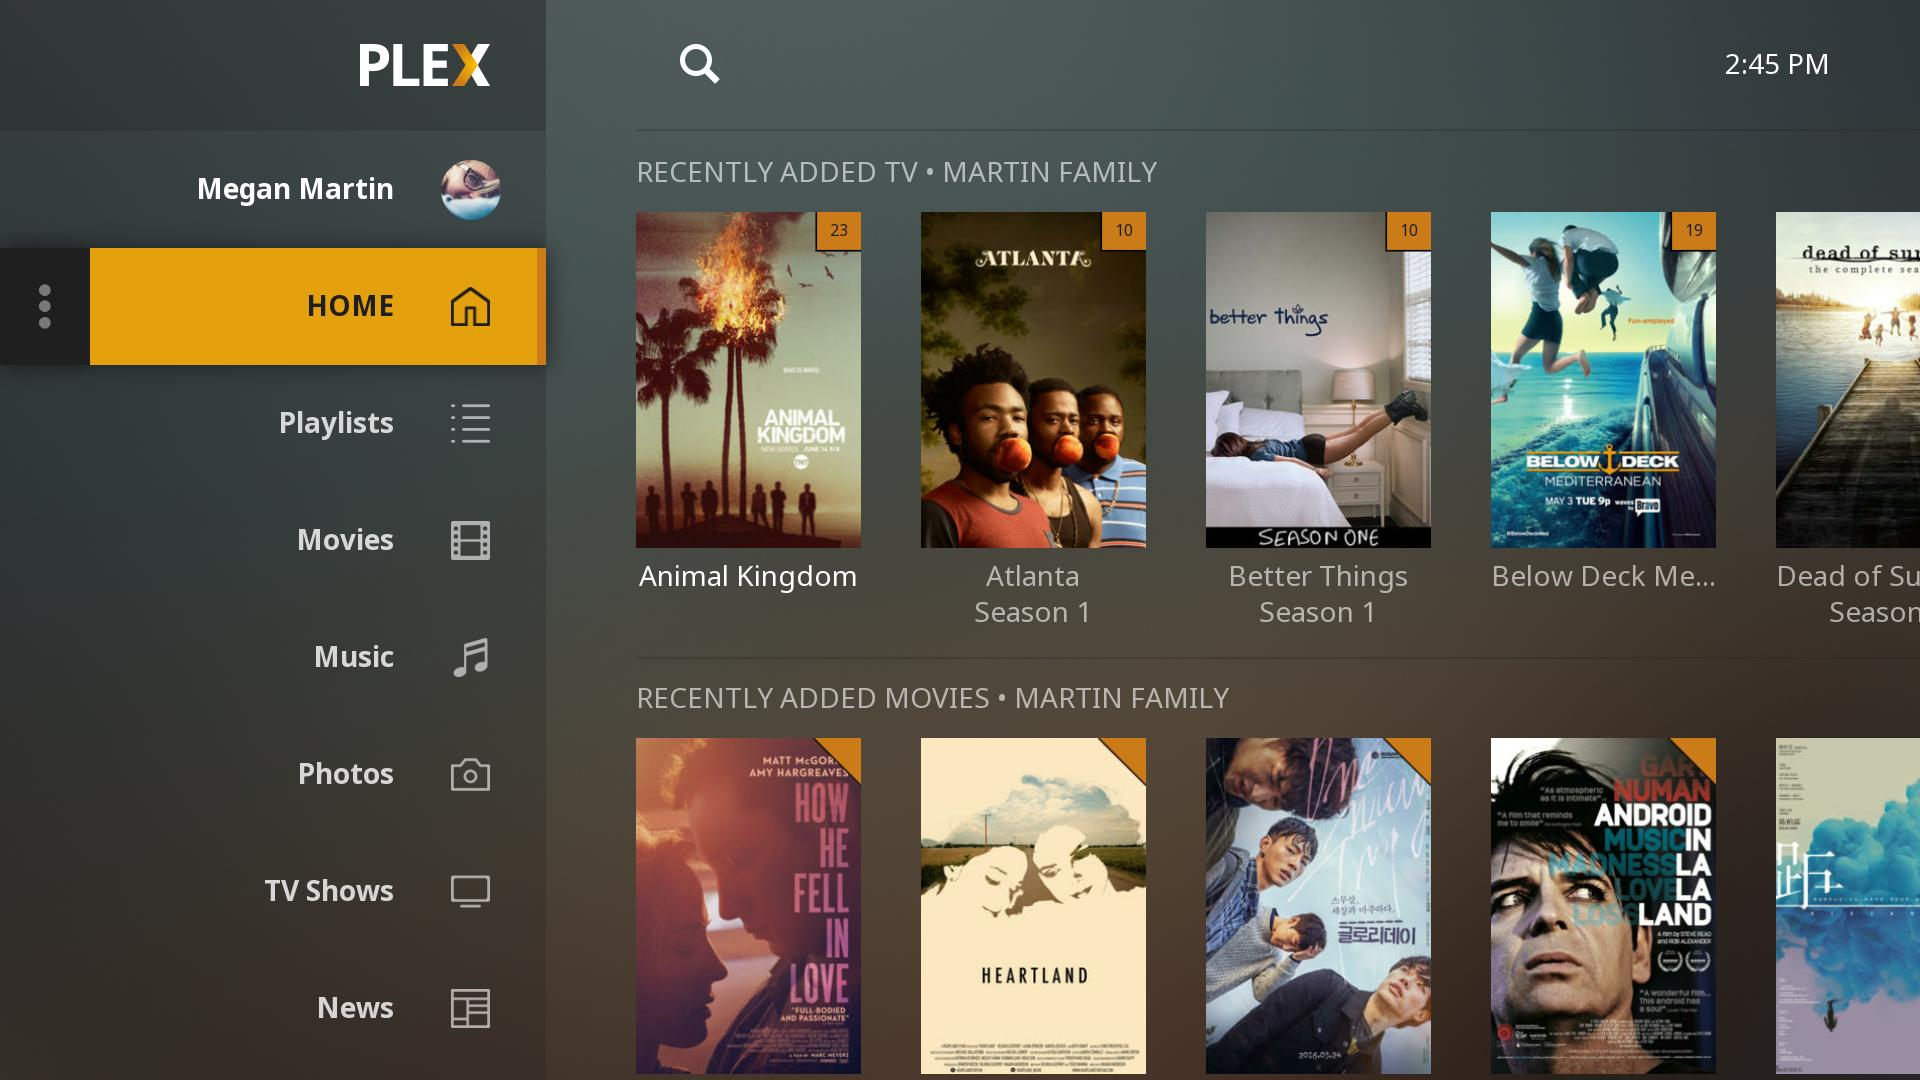 Connect a Player App to Your Plex Account | Plex Support